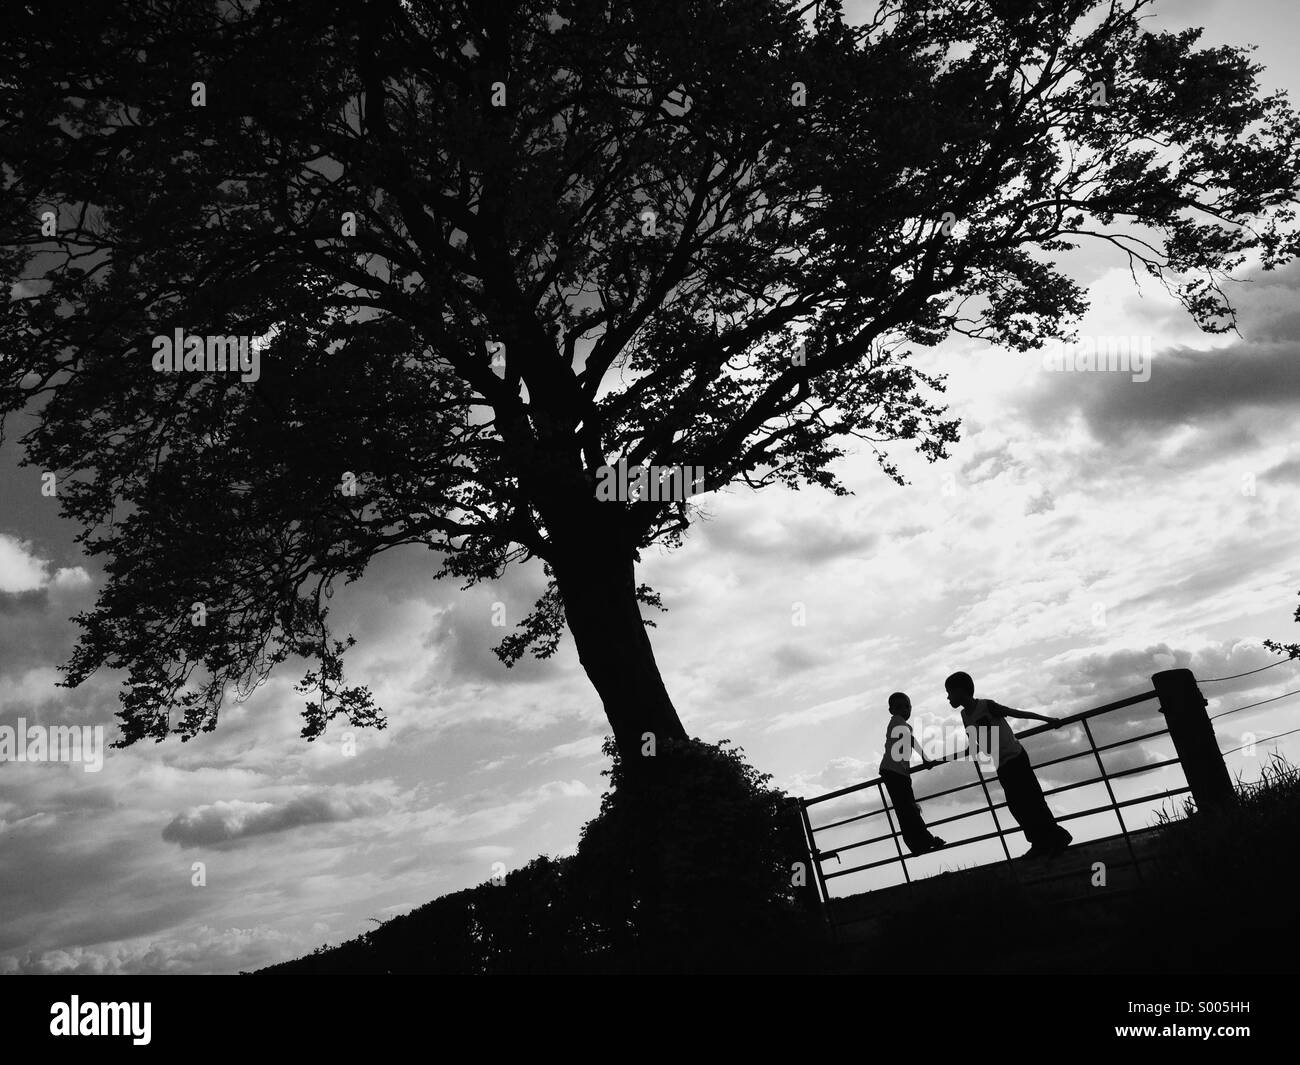 Two children silhouette standing on a gate next to a large tree - Stock Image